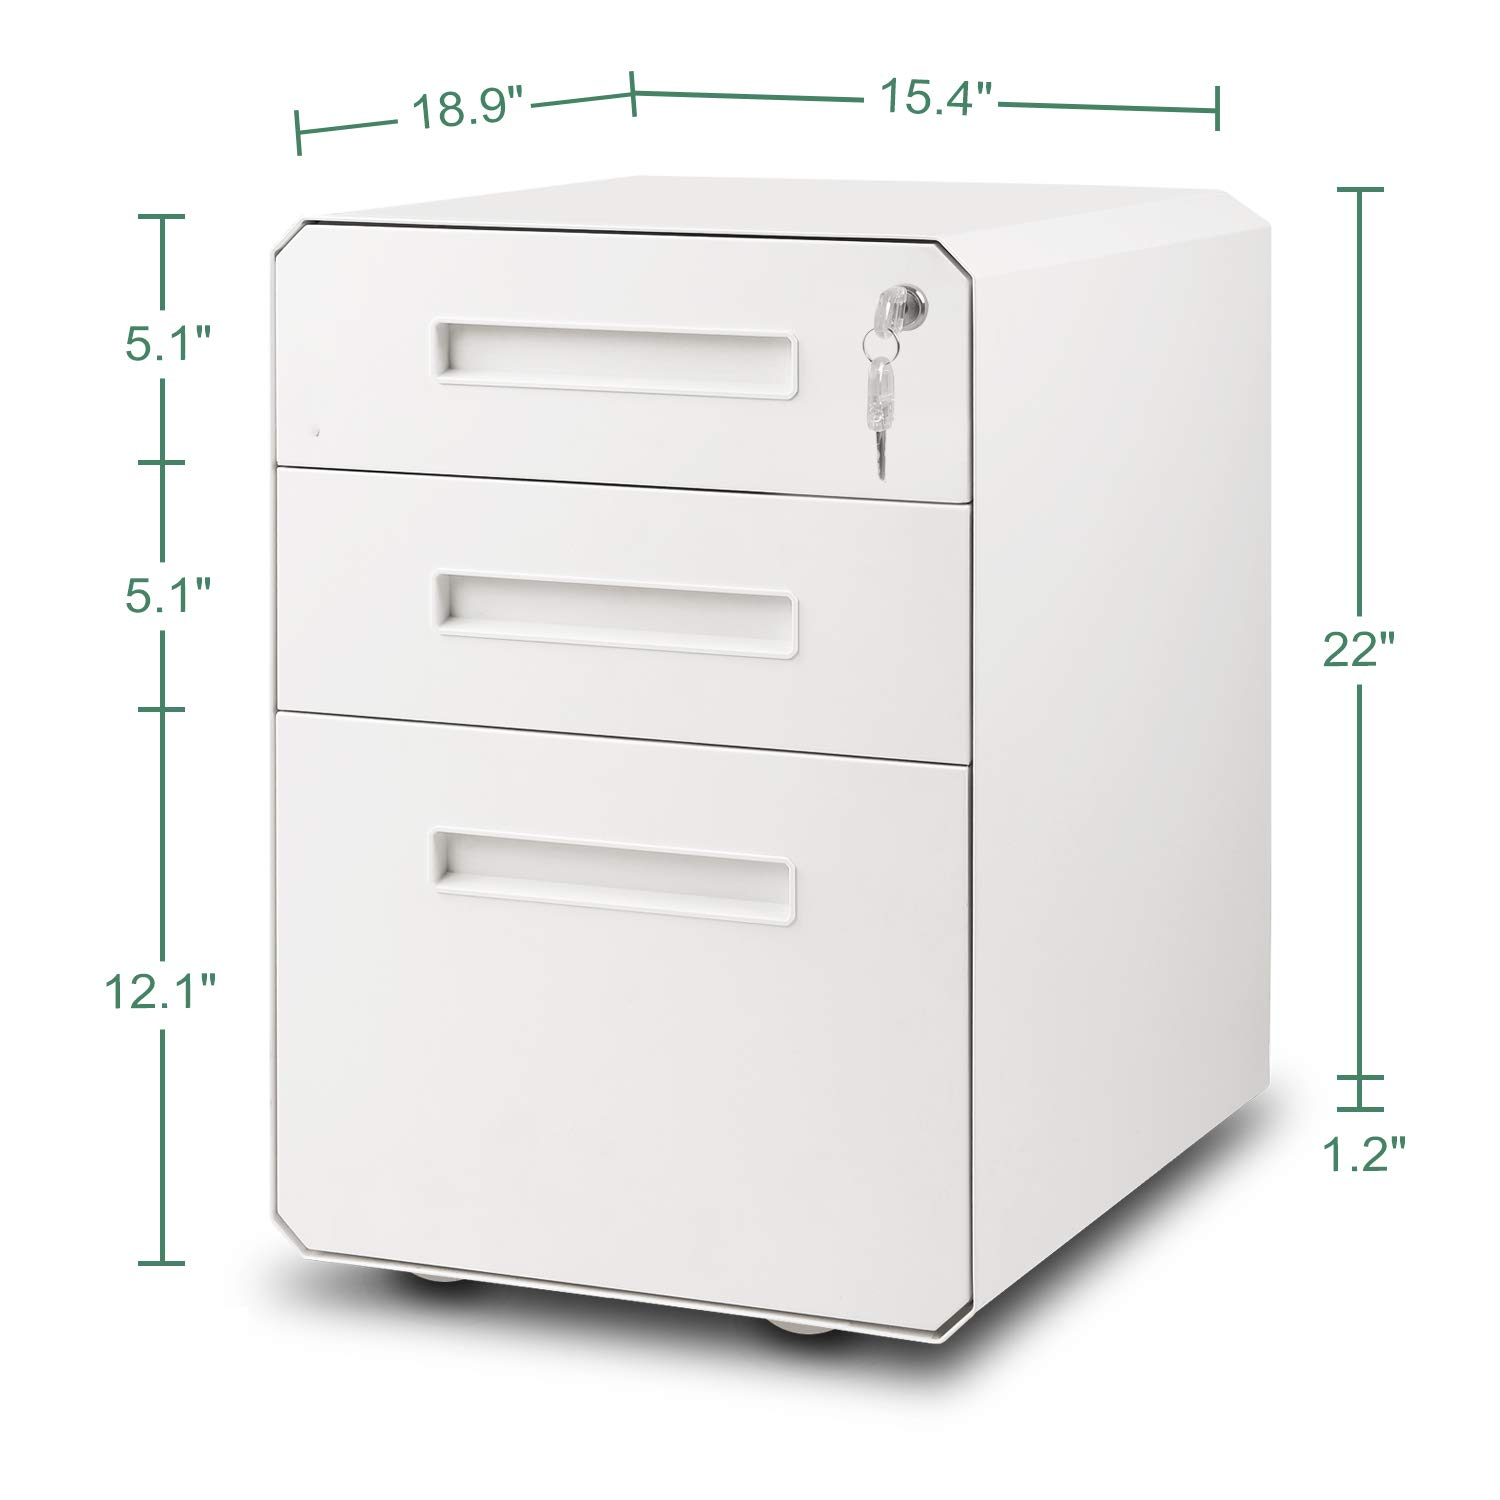 M&W 3 Drawer Mobile File Cabinet, Metal Locking Letter Filing Cabinet by M/W M & W (Image #6)